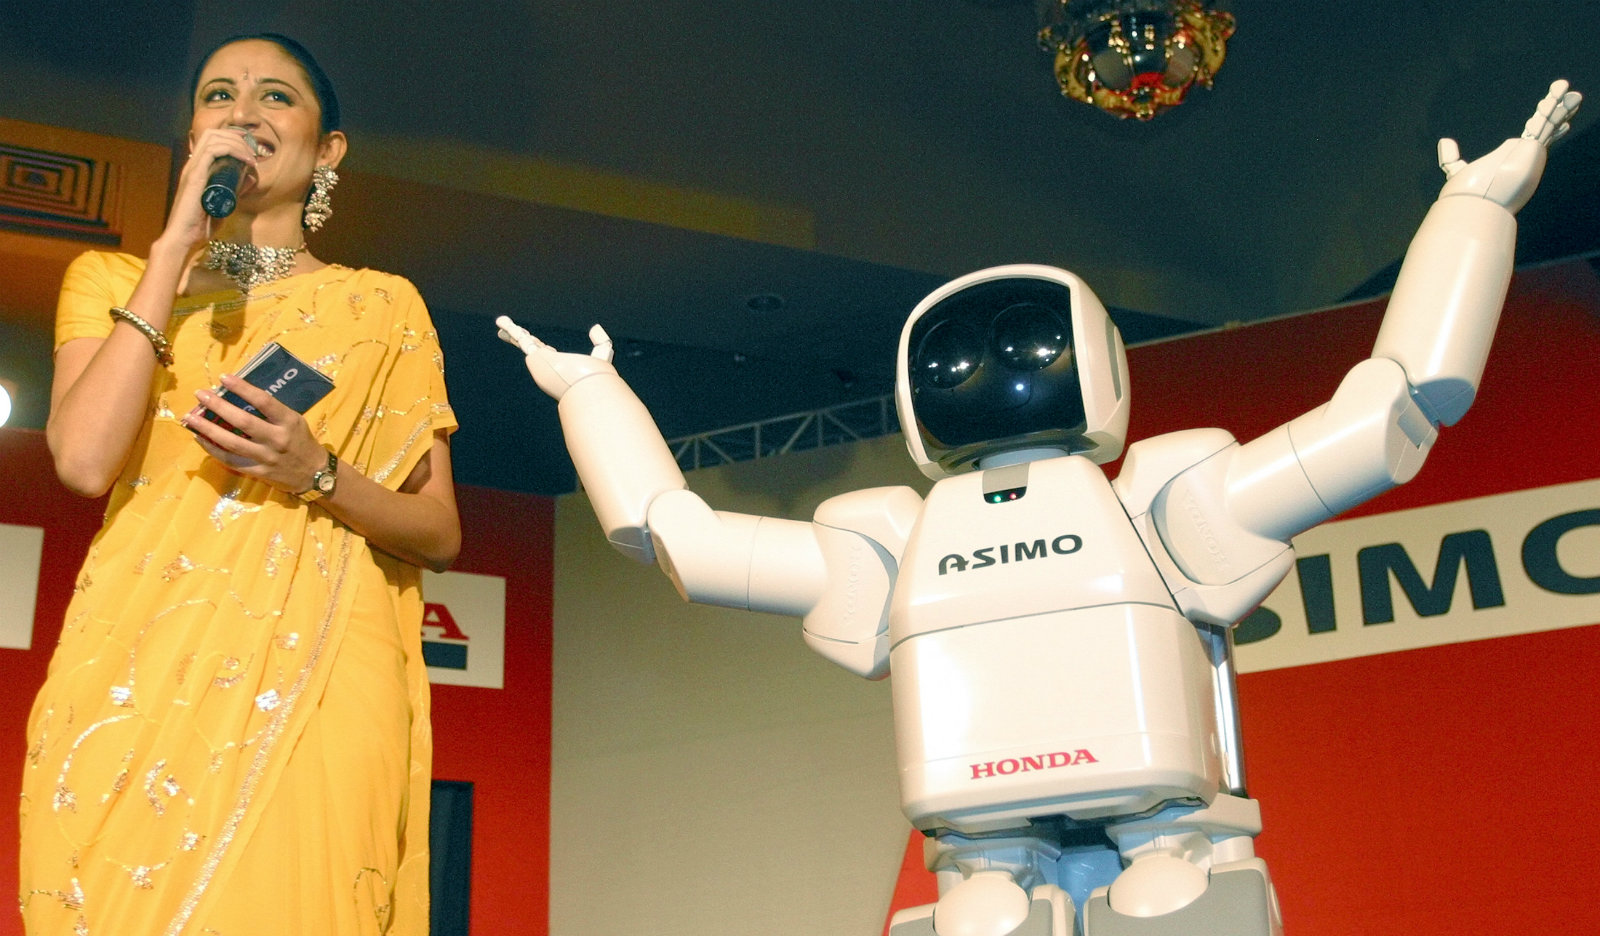 An Indian hostess talks to the media during a media conference at the launch of Honda's ASIMO in New Delhi September 9, 2003. ASIMO, a robot that can walk autonomously, is the world's most advanced humanoid robot.